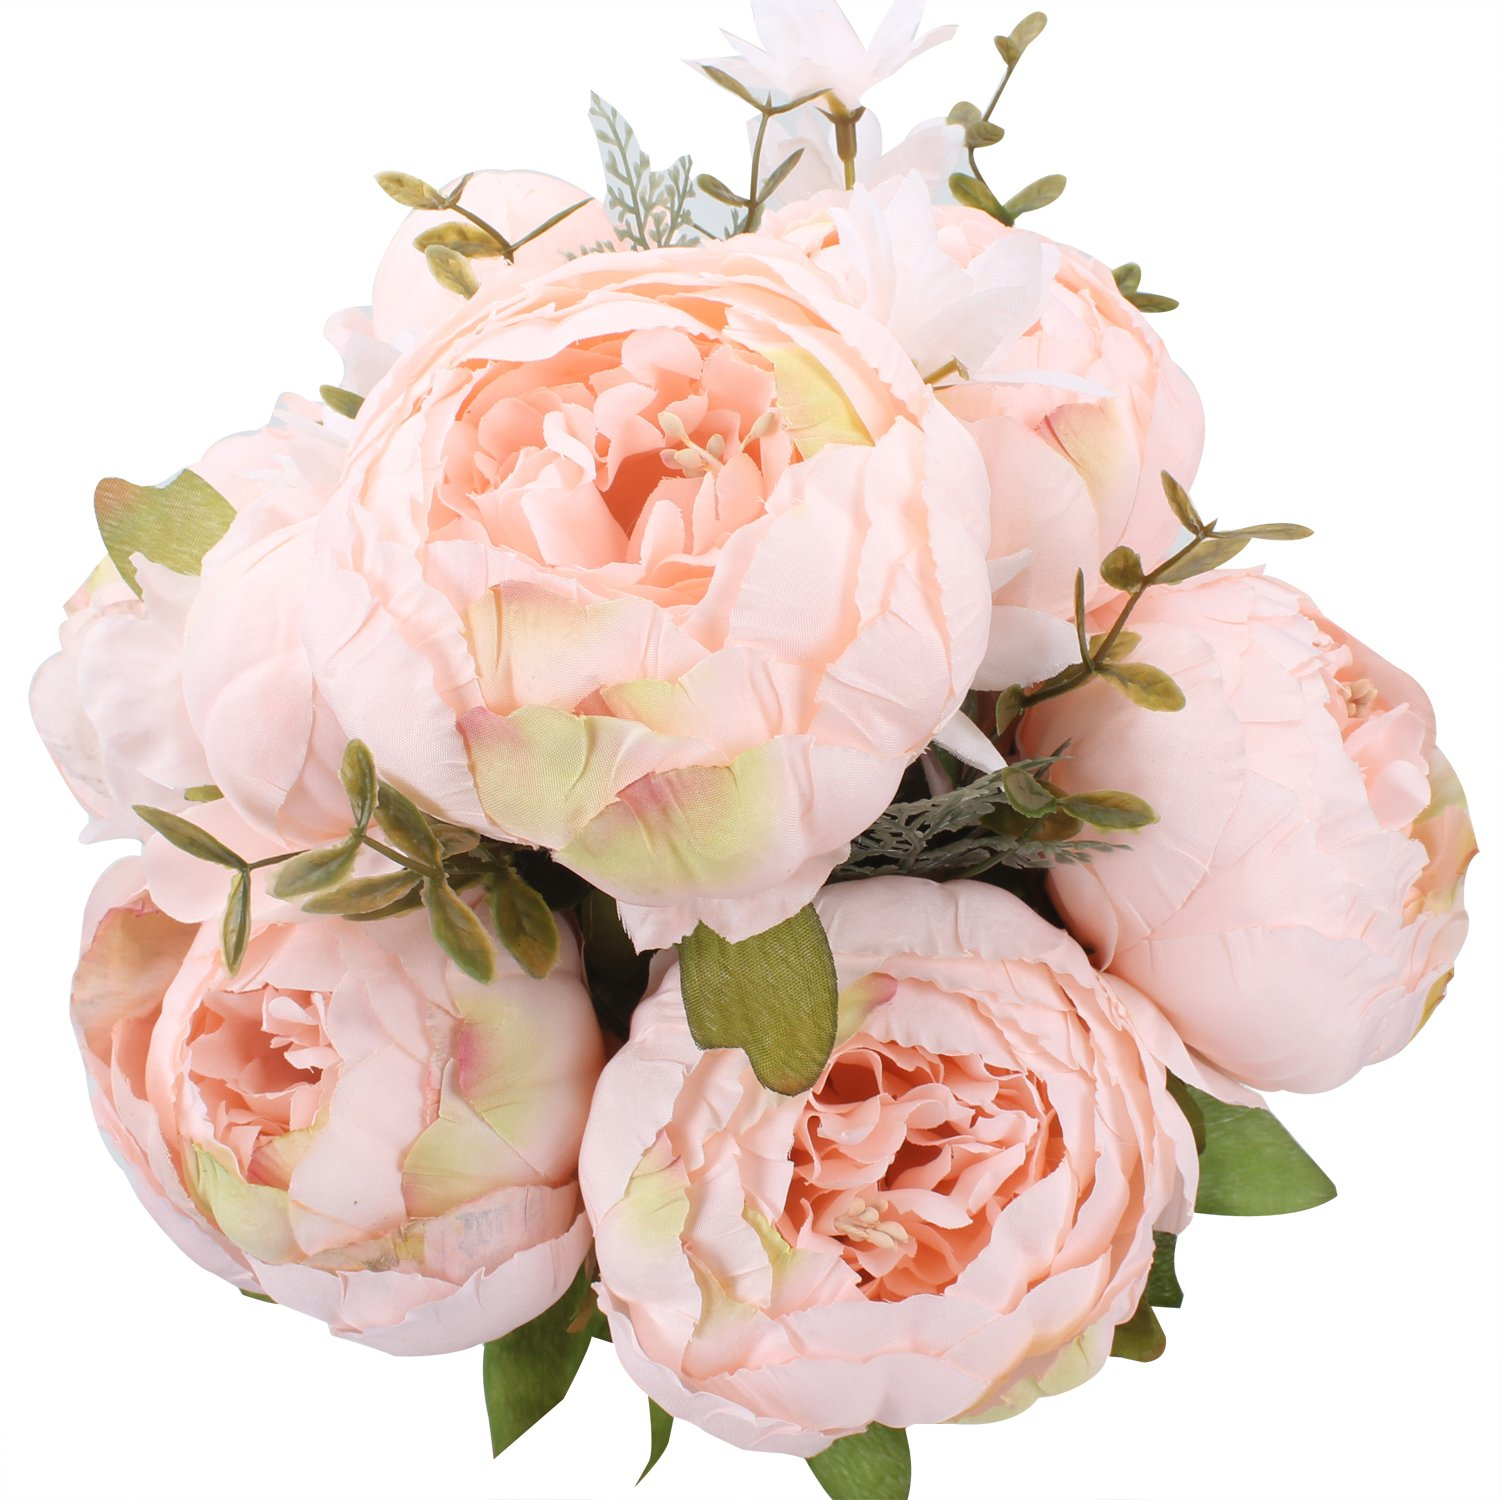 Amazon duovlo springs flowers artificial silk peony bouquets amazon duovlo springs flowers artificial silk peony bouquets wedding home decorationpack of 1 spring pure pink home kitchen dhlflorist Images